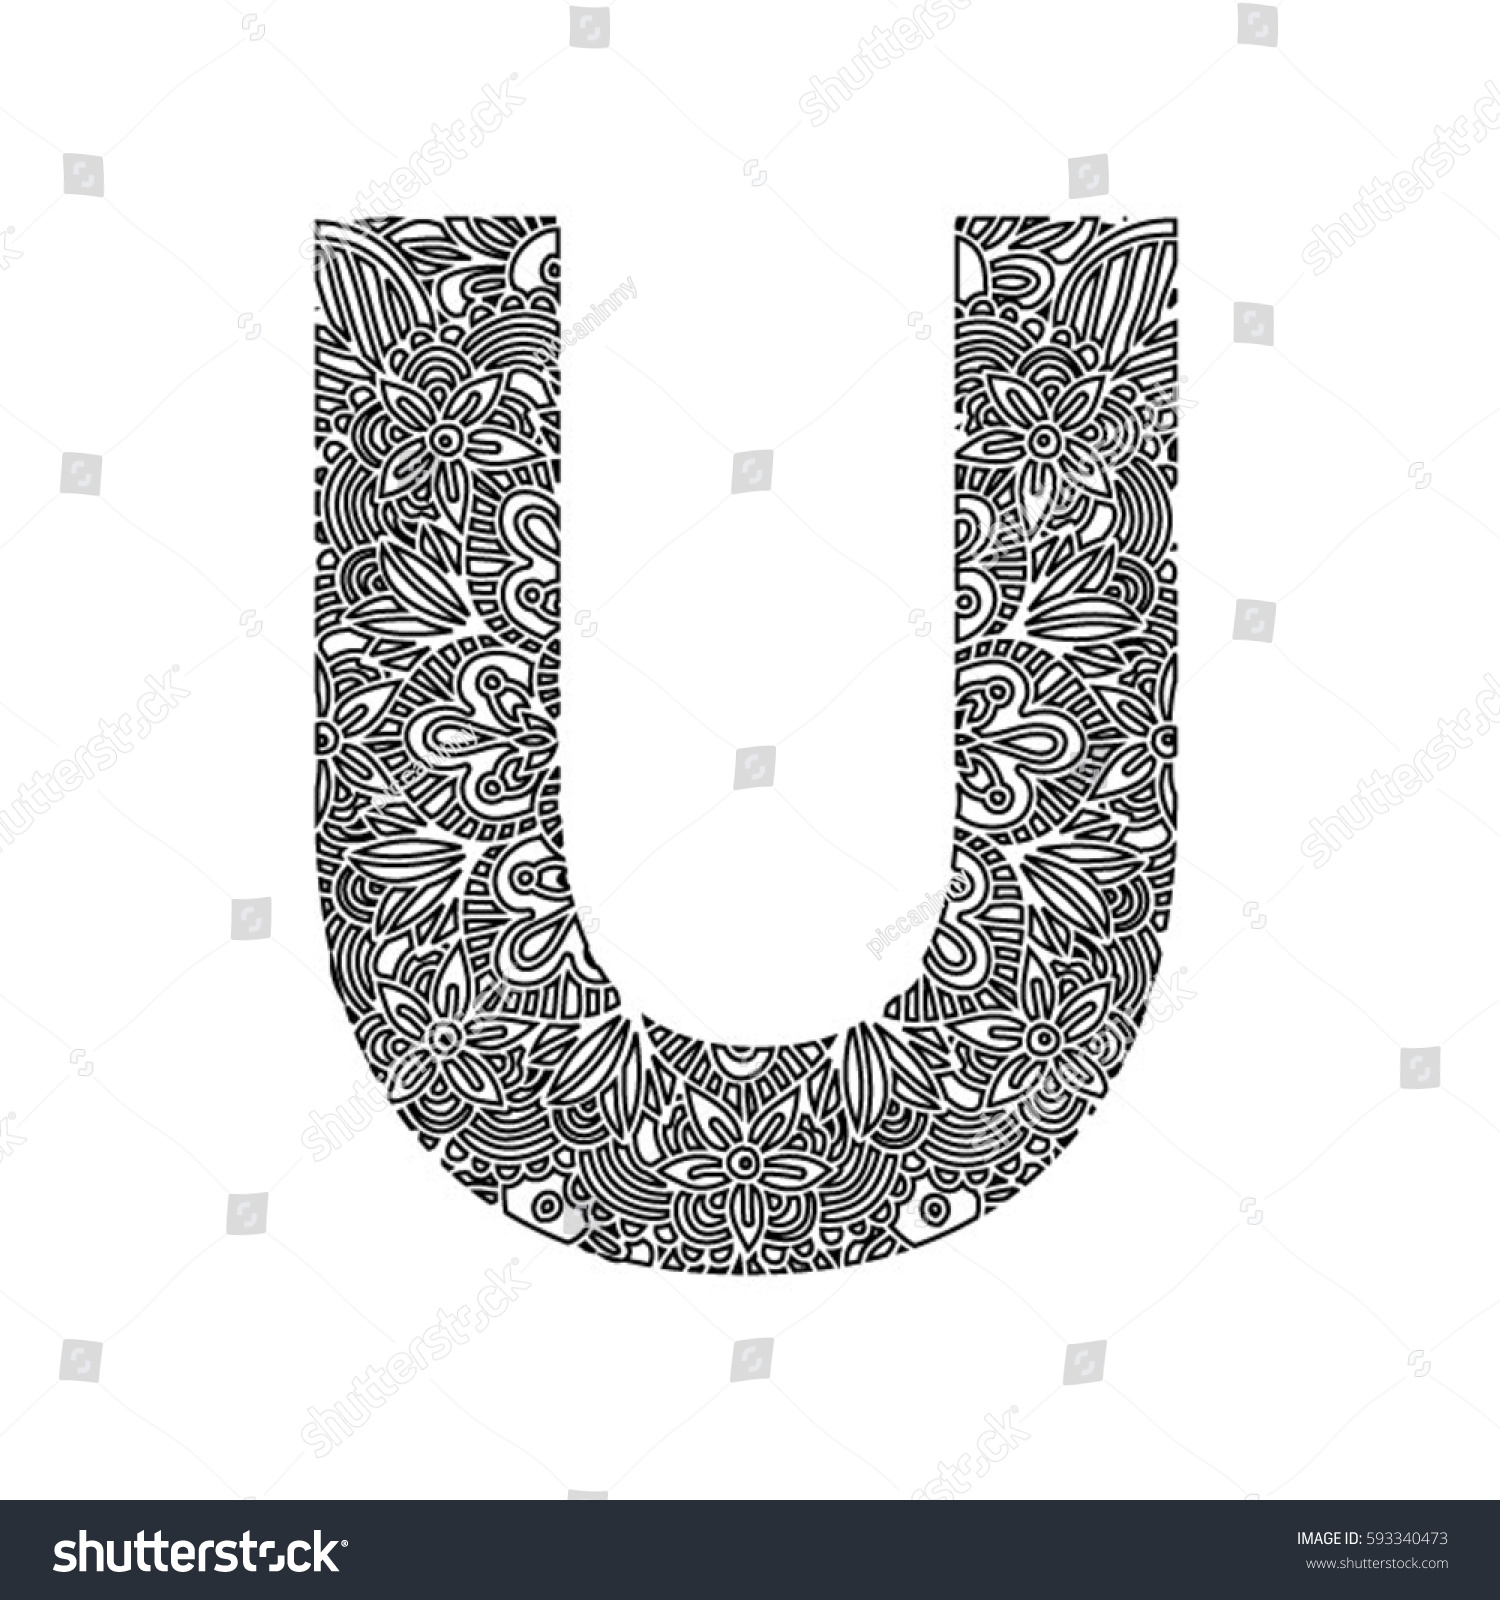 Decorative Hand Made Font Ornamental Font Stock Vector